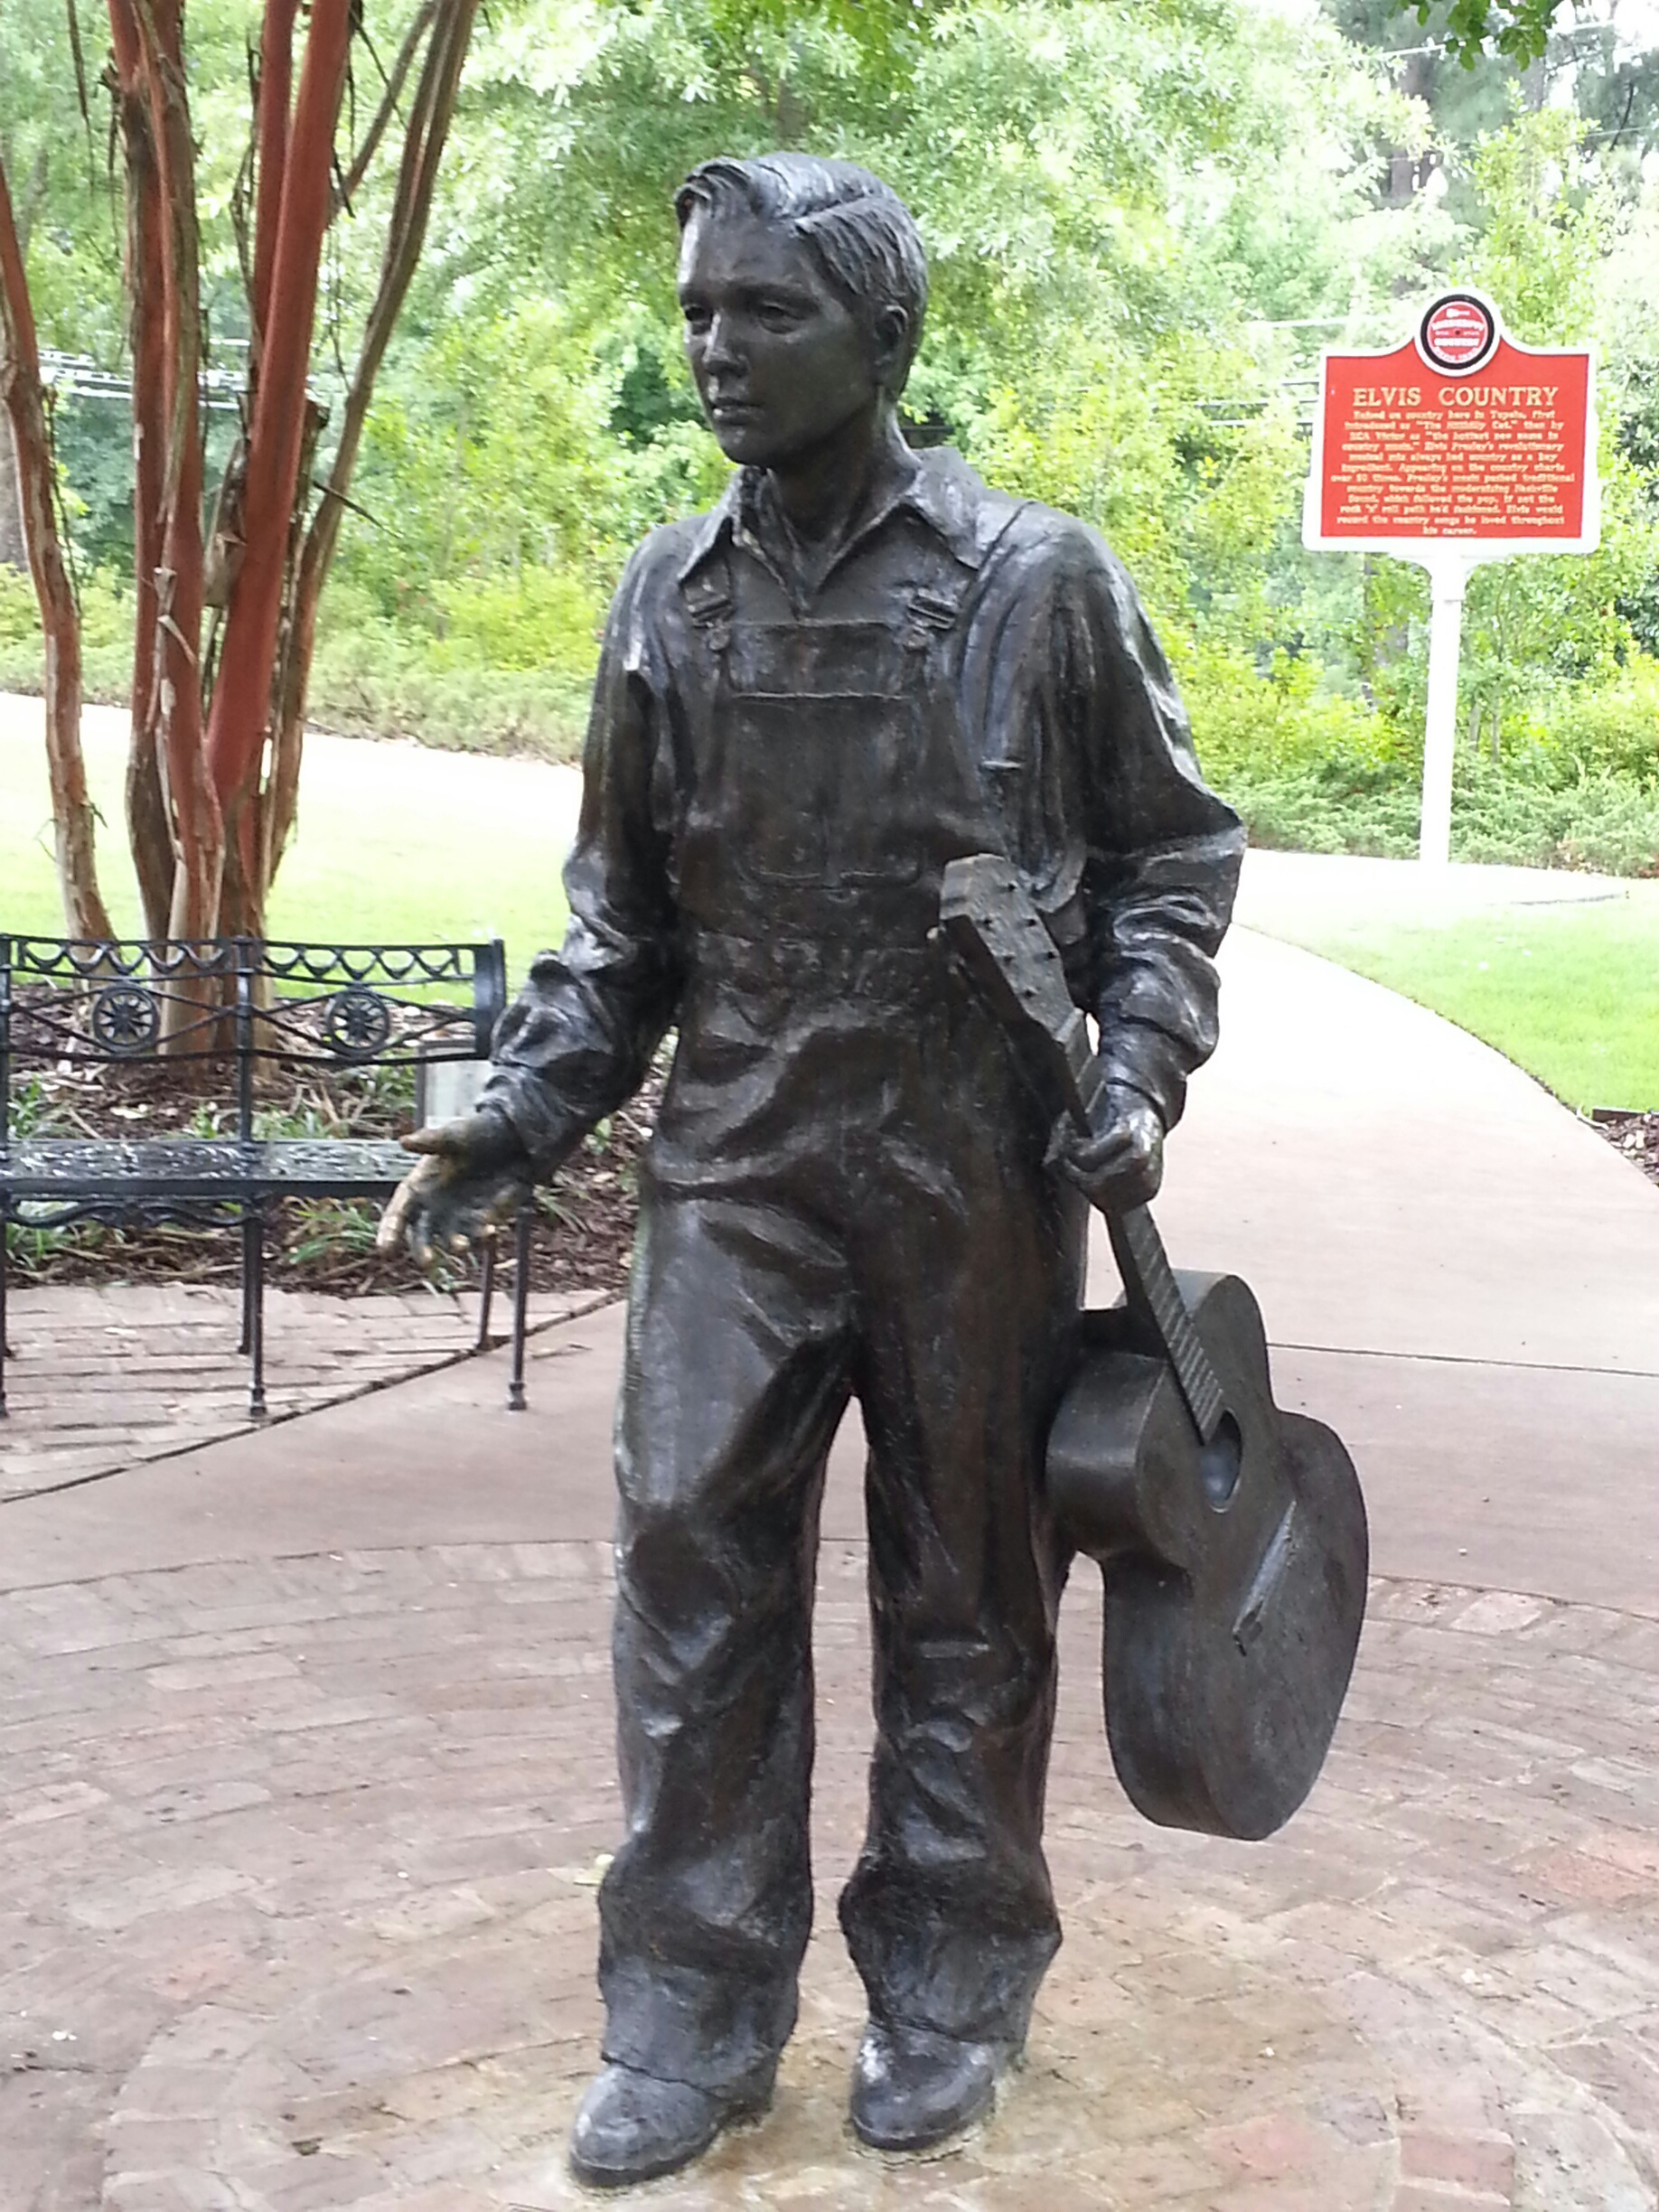 Young Elvis statue at Tupelo in honor of the South Carolina Elvis Festival